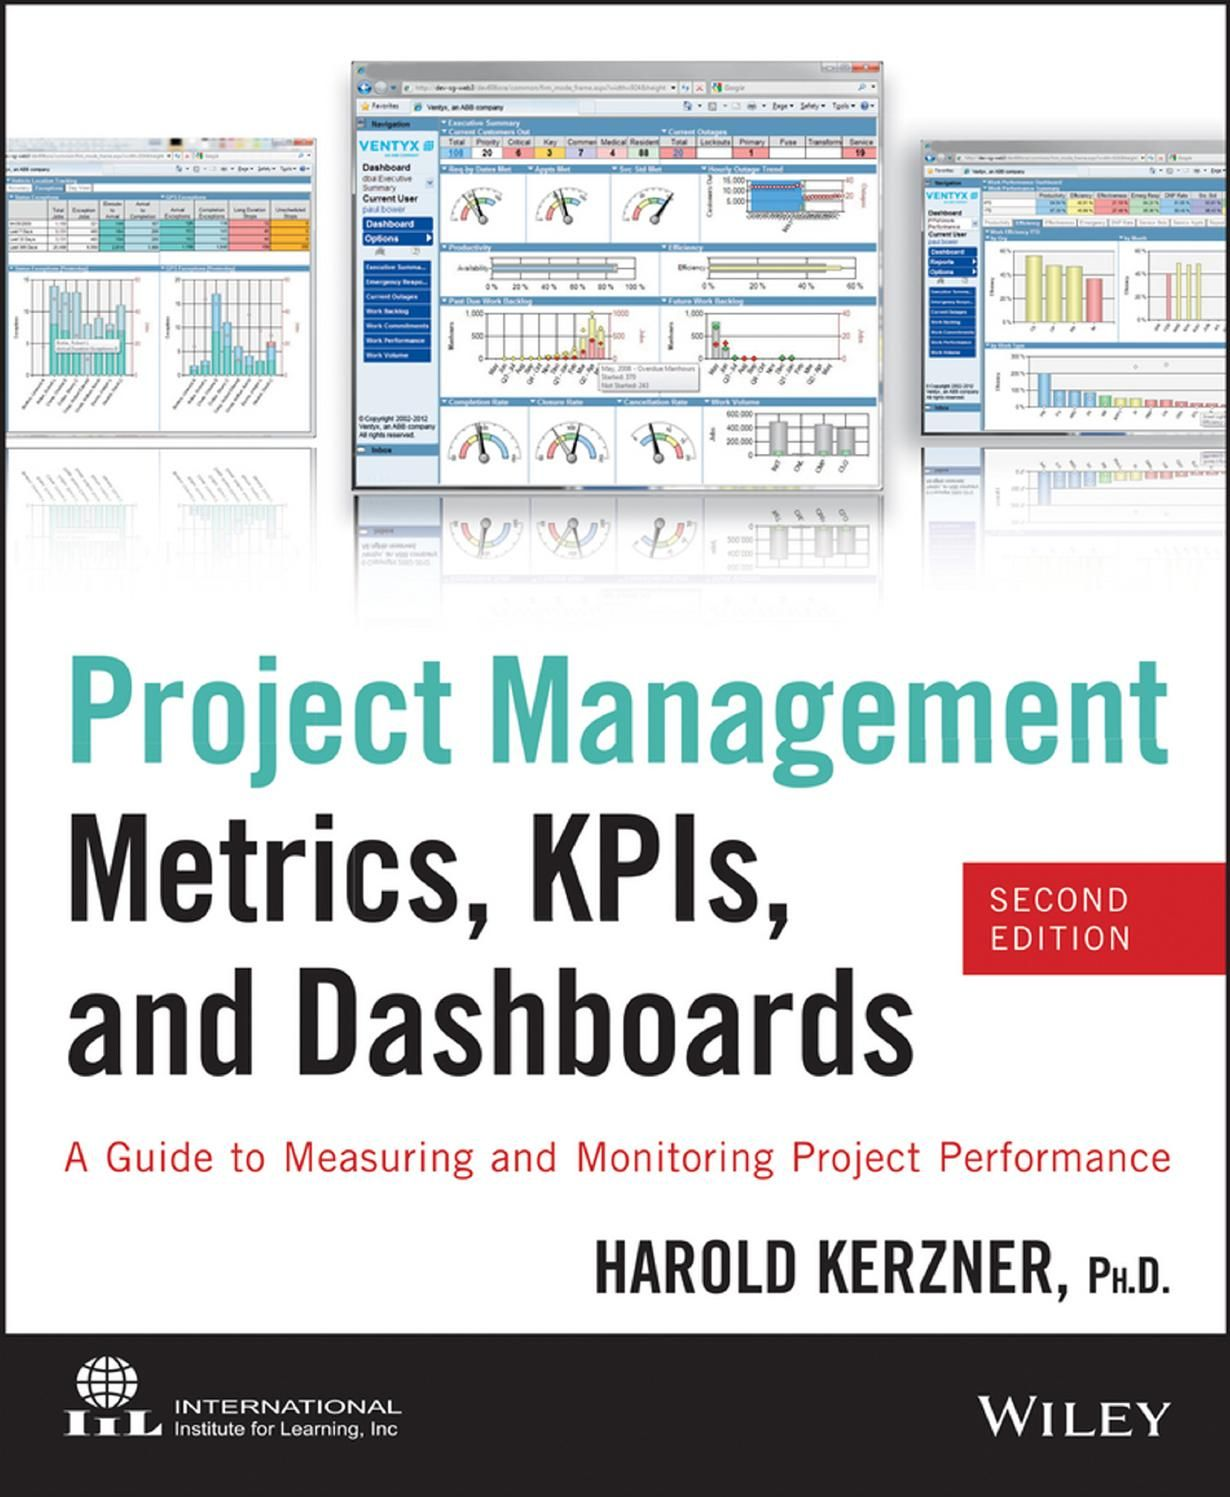 Project management metrics, kpis and dashboards | lean | Pinterest ...